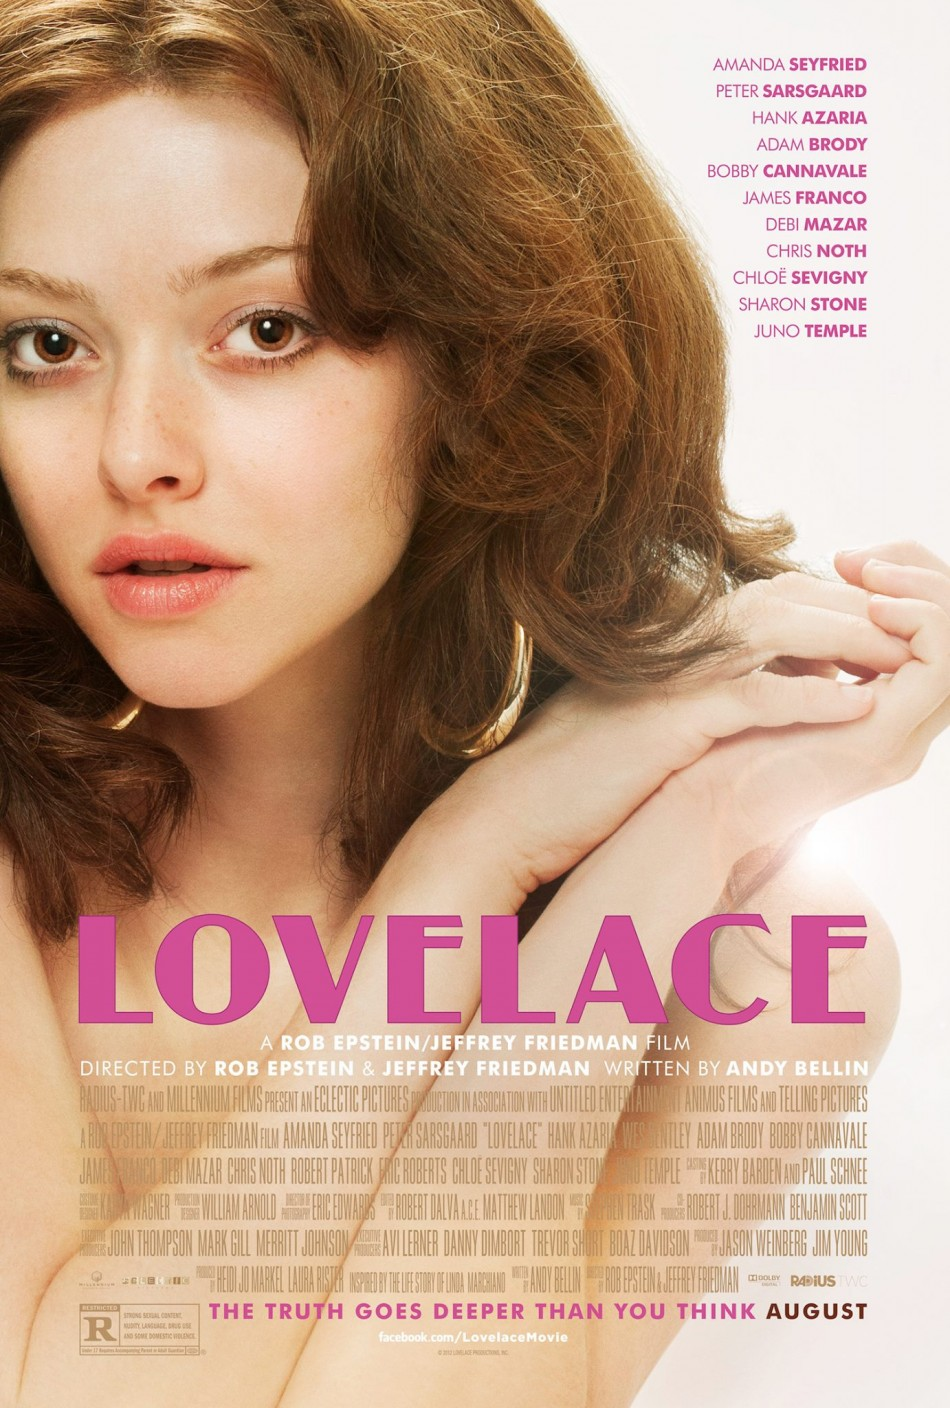 1972 Porn Movie, Deep Throat's Production Company Files Lawsuit and  Seeks to Block Seyfried Starrer Lovelace/Facebook/Lovelace